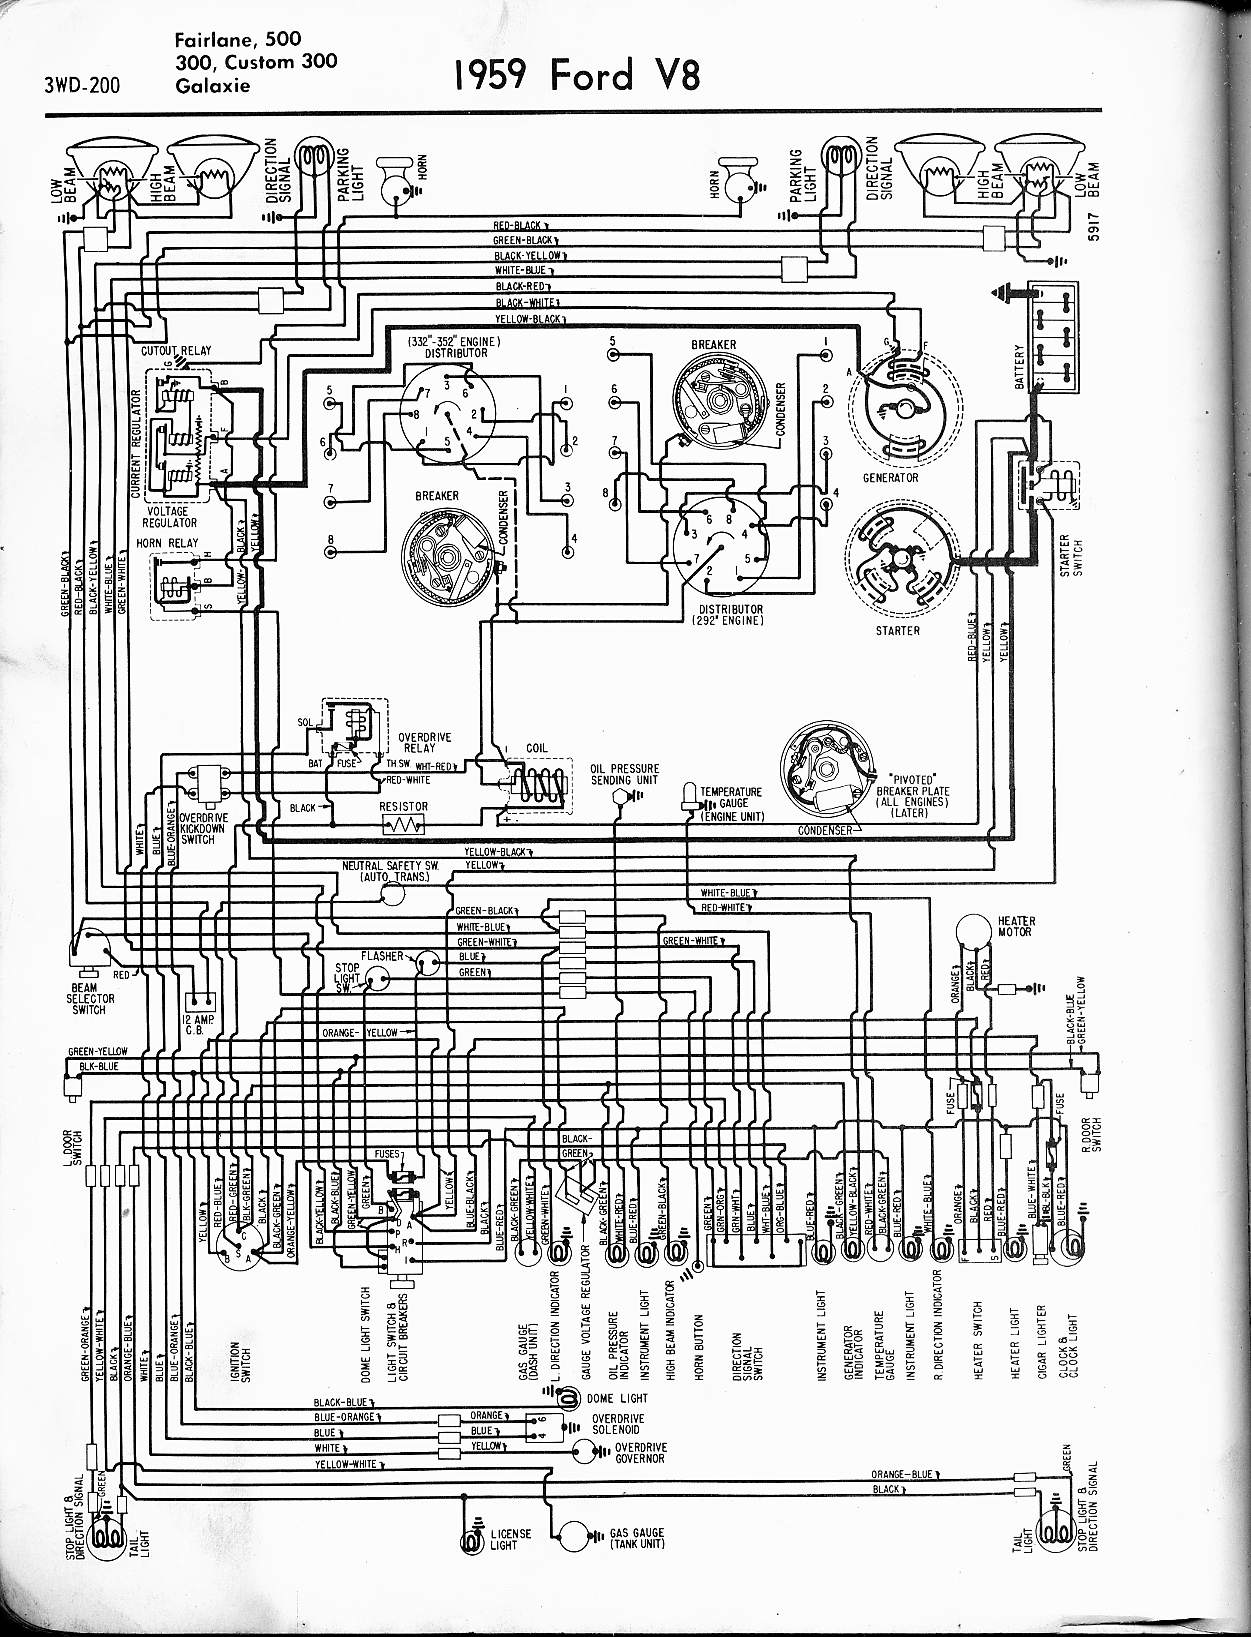 ford generator wiring diagram 1934 ford truck wiring diagram | wiring library #9